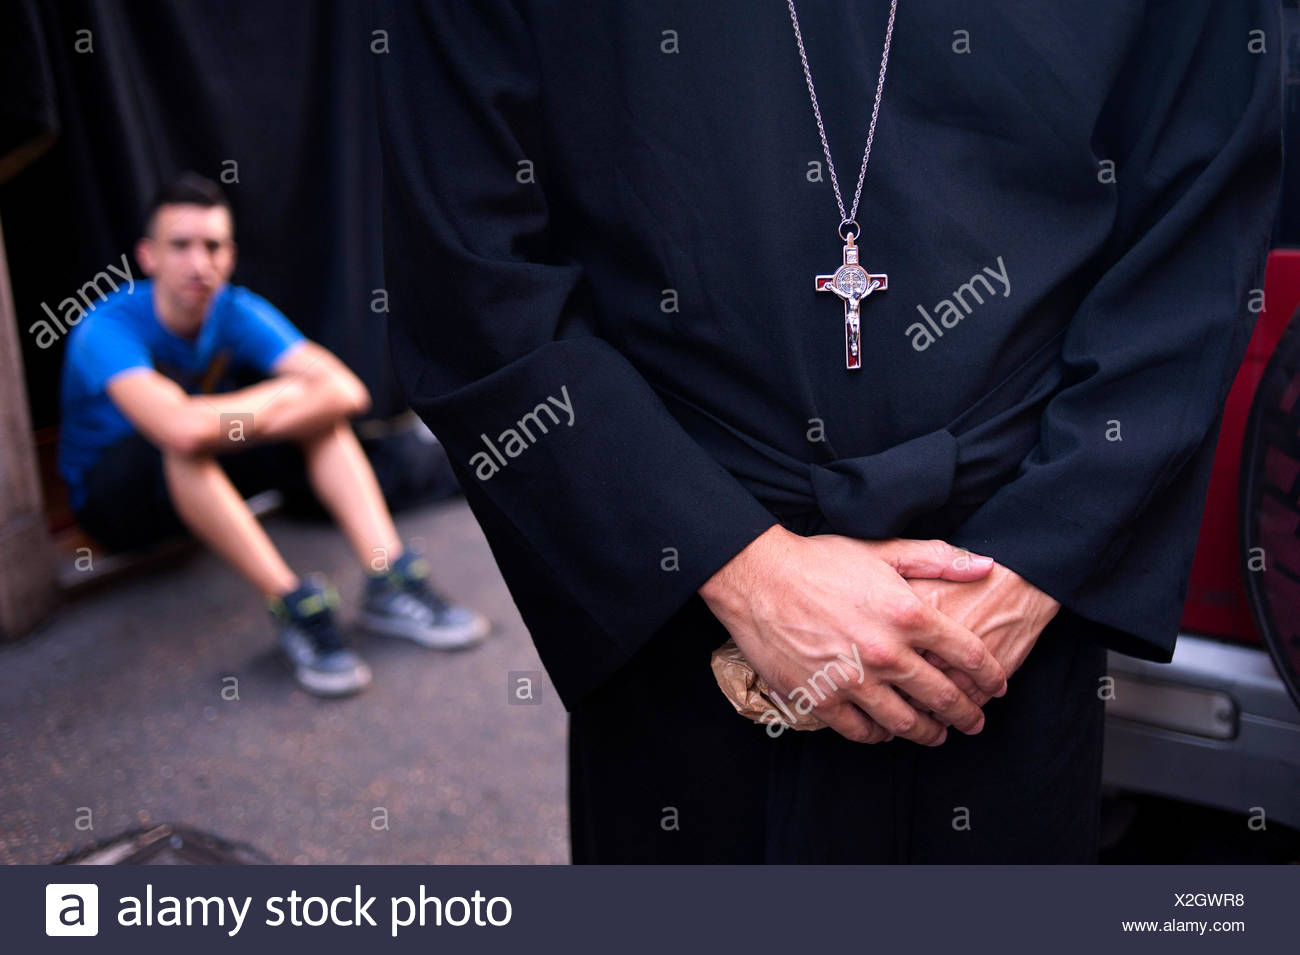 A priest folds his hands while a nearby man looks on. - Stock Image